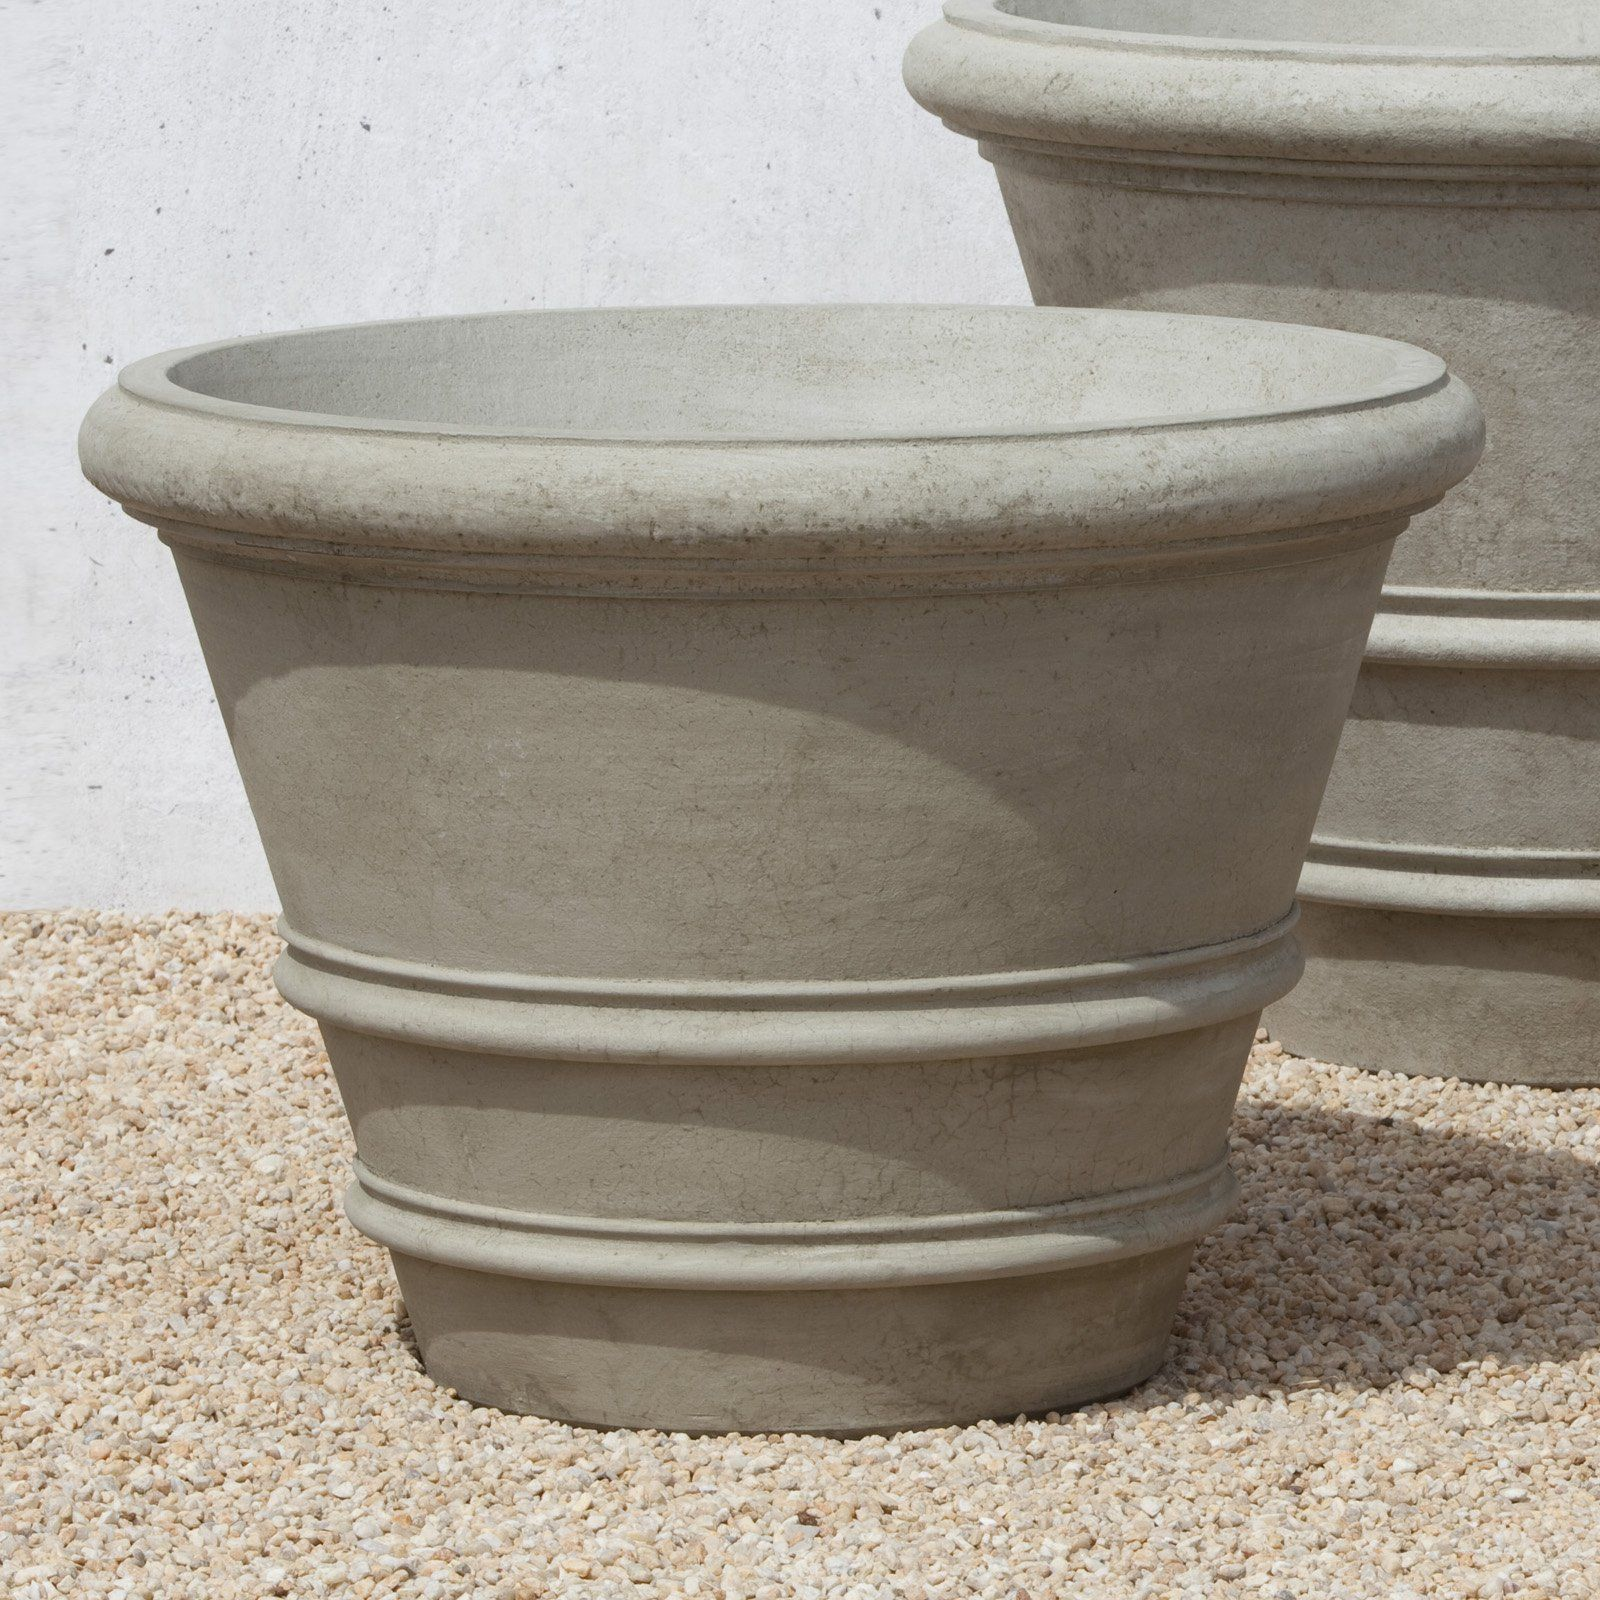 Campania International Classic Rolled Rim Cast Stone Planter   31.5 In.    Planters At Hayneedle